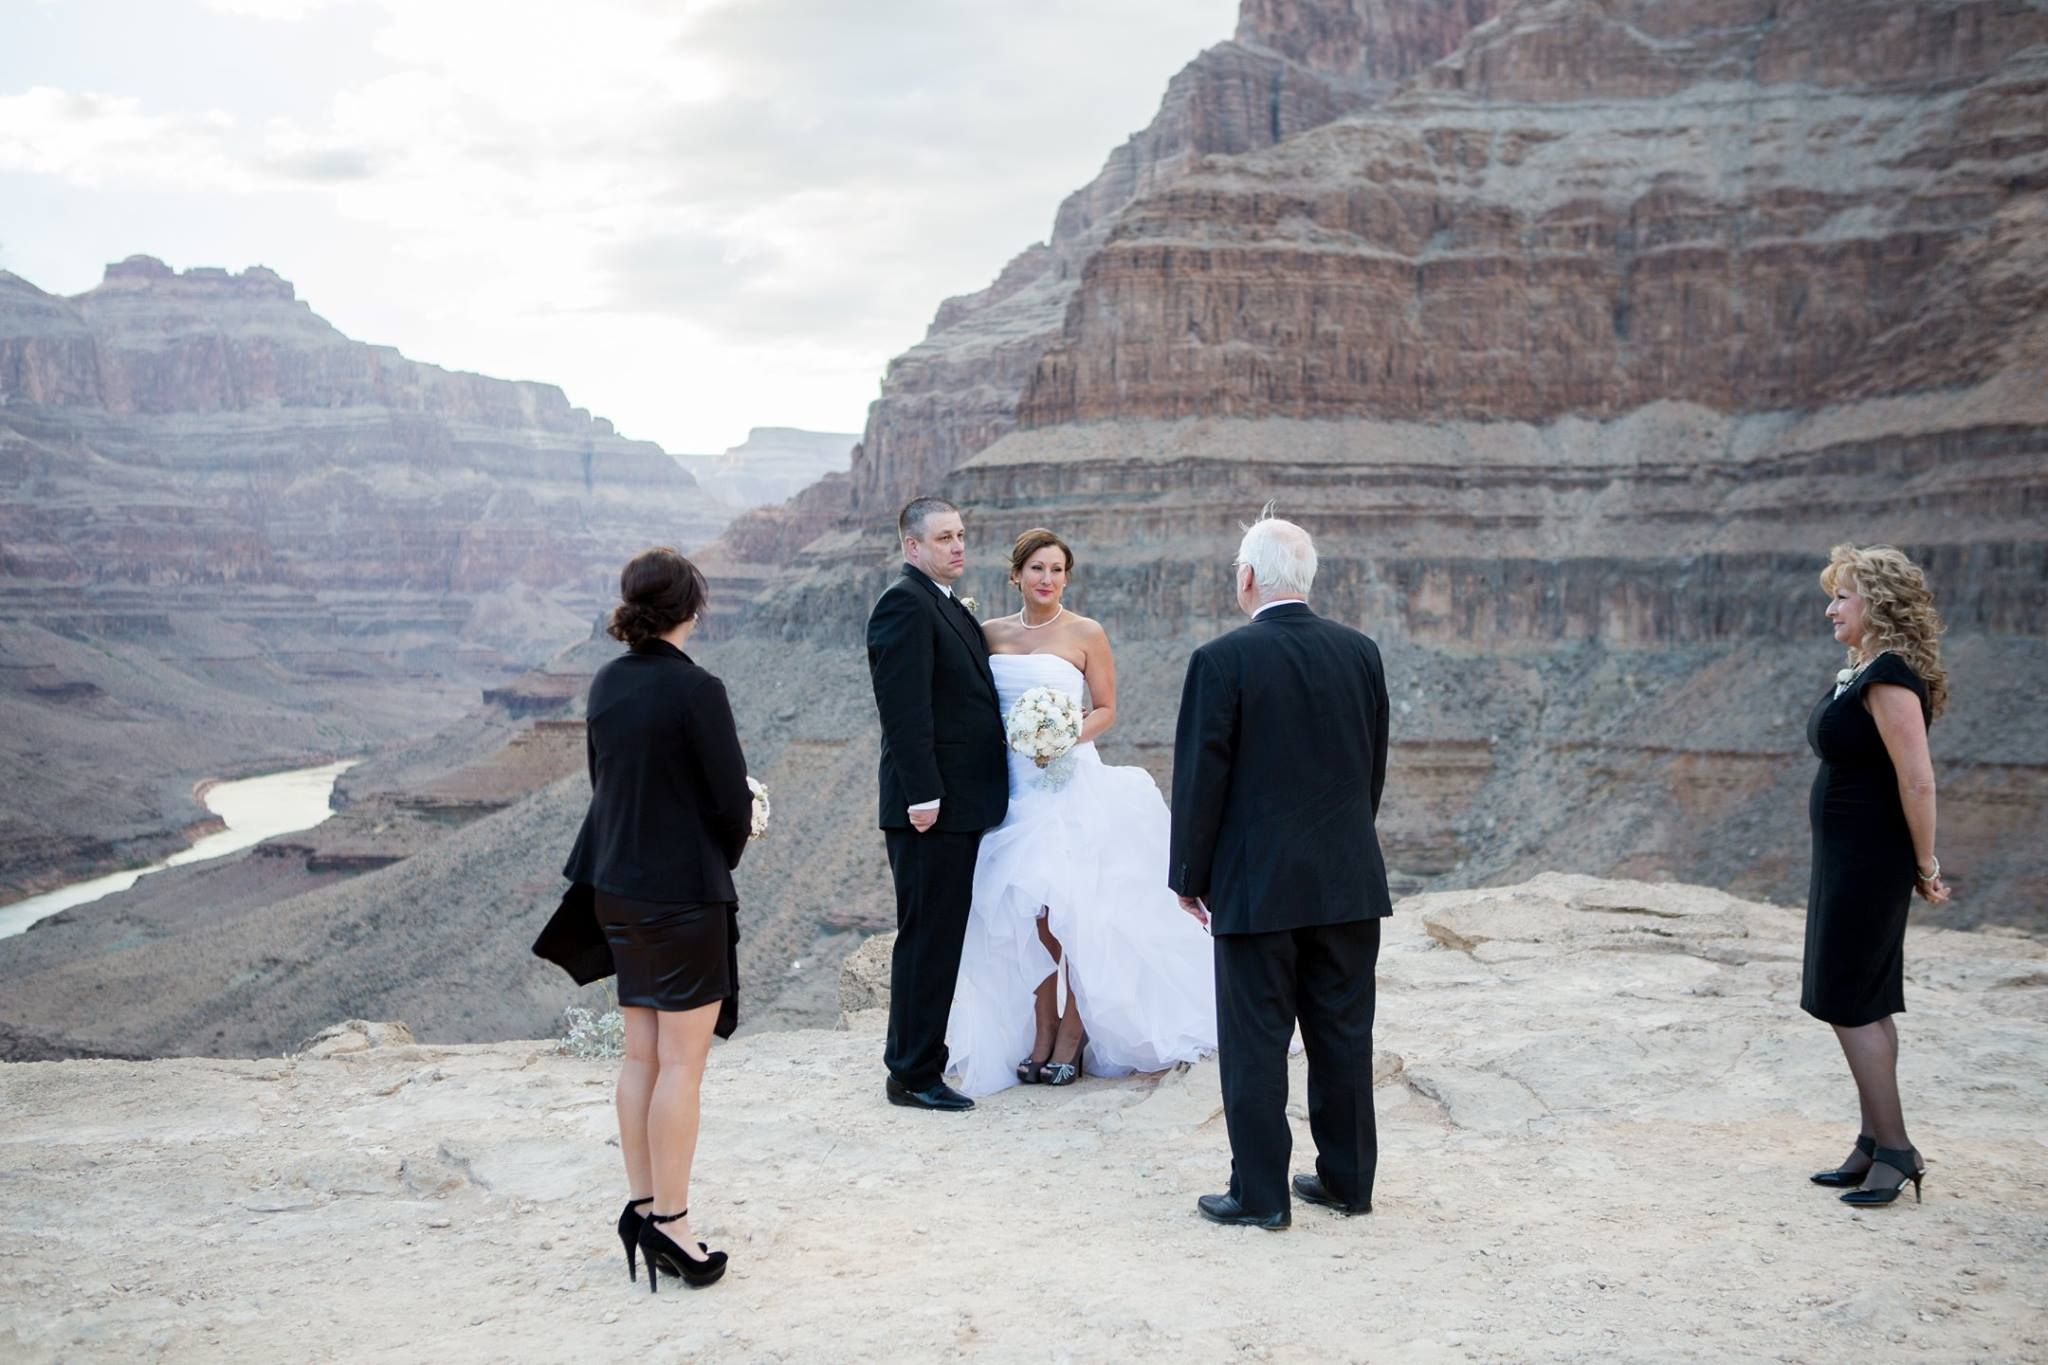 Grand Canyon Wedding Ceremony Chapel Of The Flowers